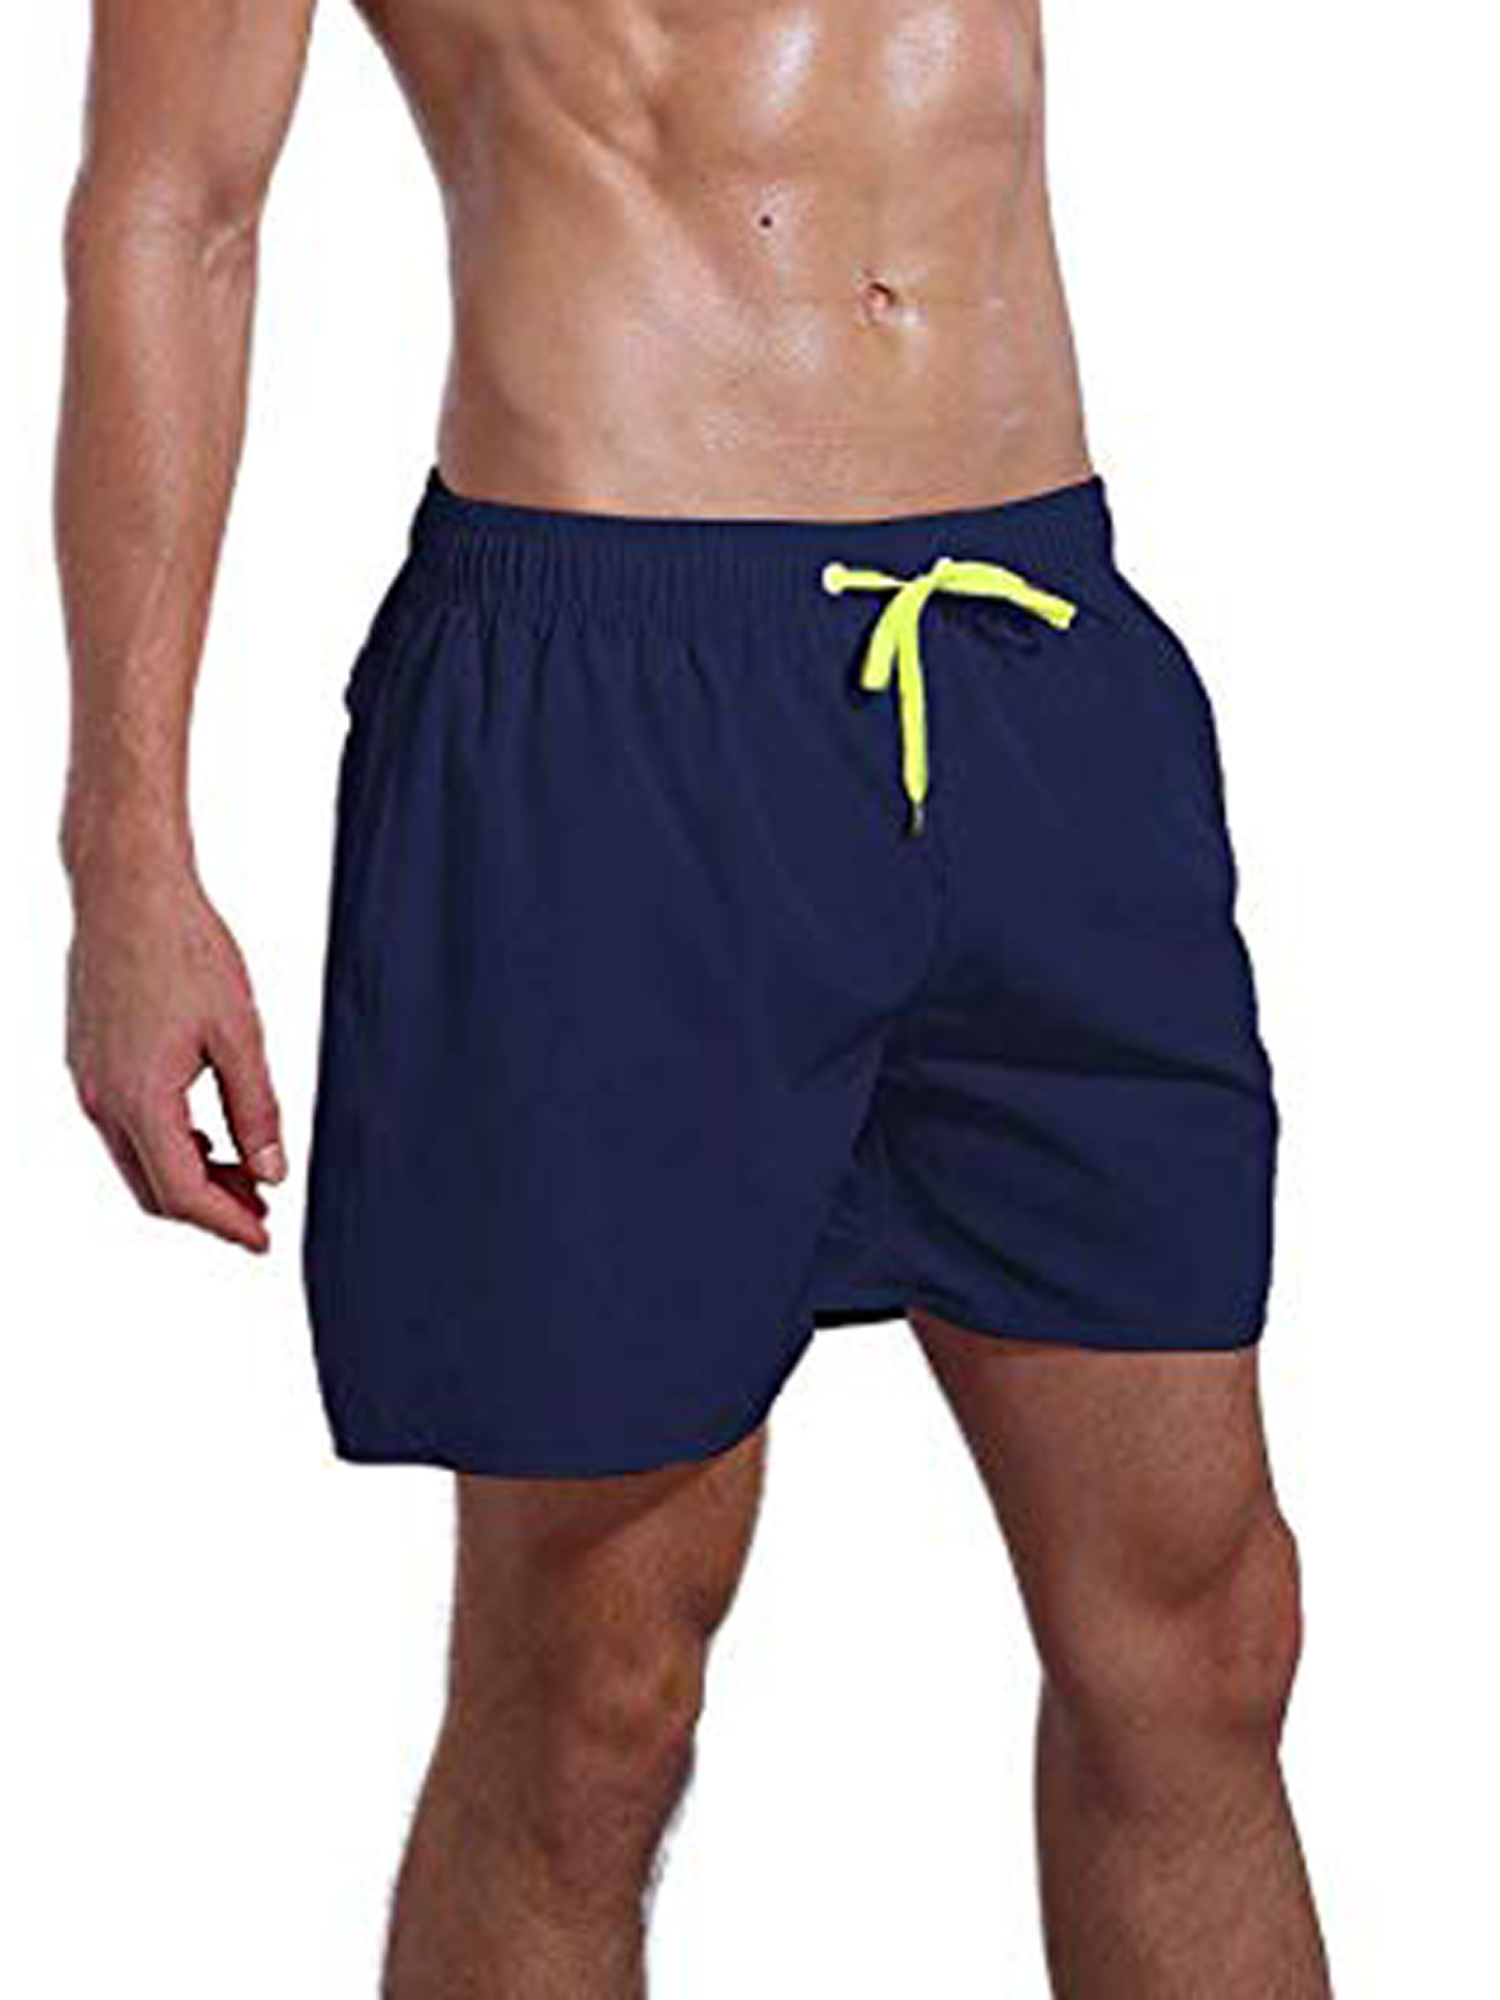 You Know And Good Space Fam Mens Swim Trunks Bathing Suit Beach Shorts